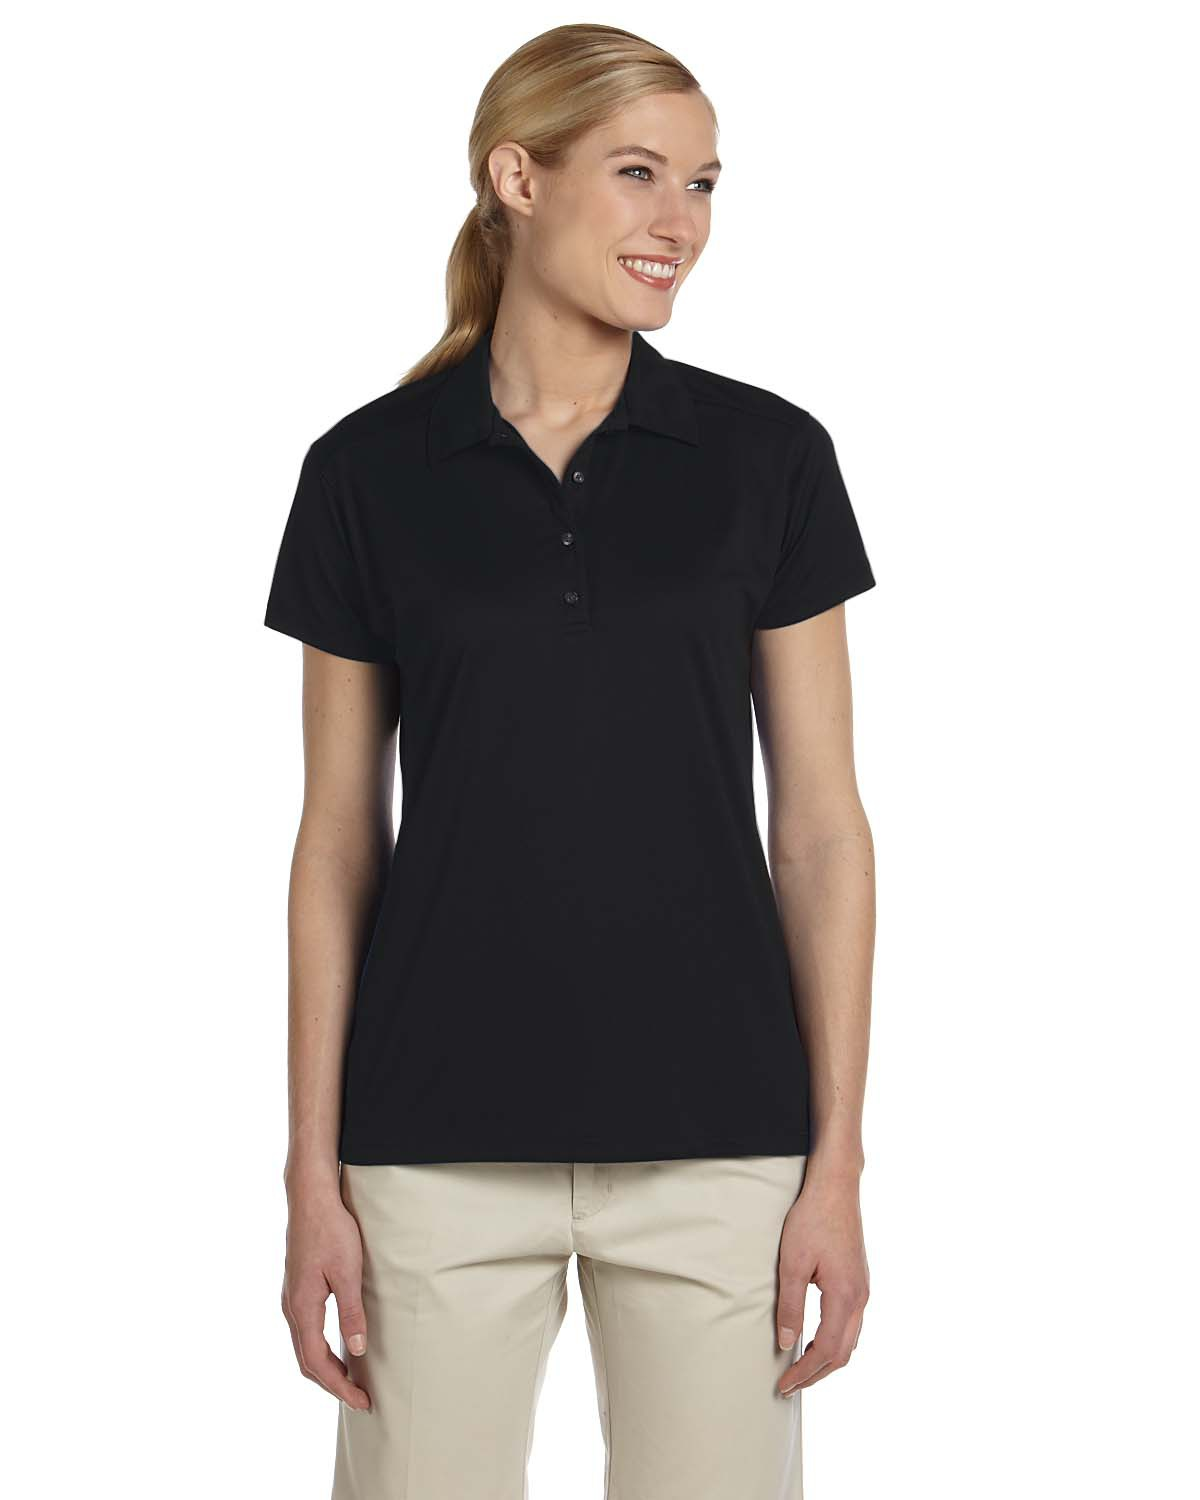 Ladies' 4.1 oz. 100% Polyester Mesh Sport with Moisture-Wicking Polo